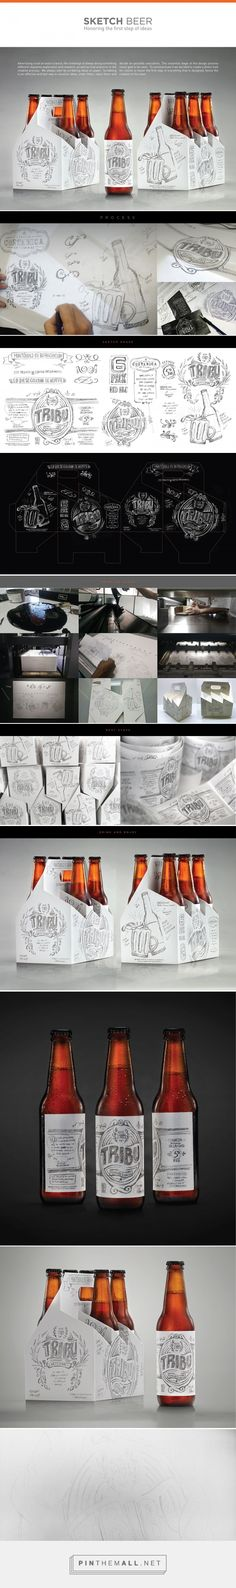 Tribu Sketch Beer packaging design by Tribu DDBº (Costa Rica) - http://www.packagingoftheworld.com/2016/07/tribu-sketch-beer.html